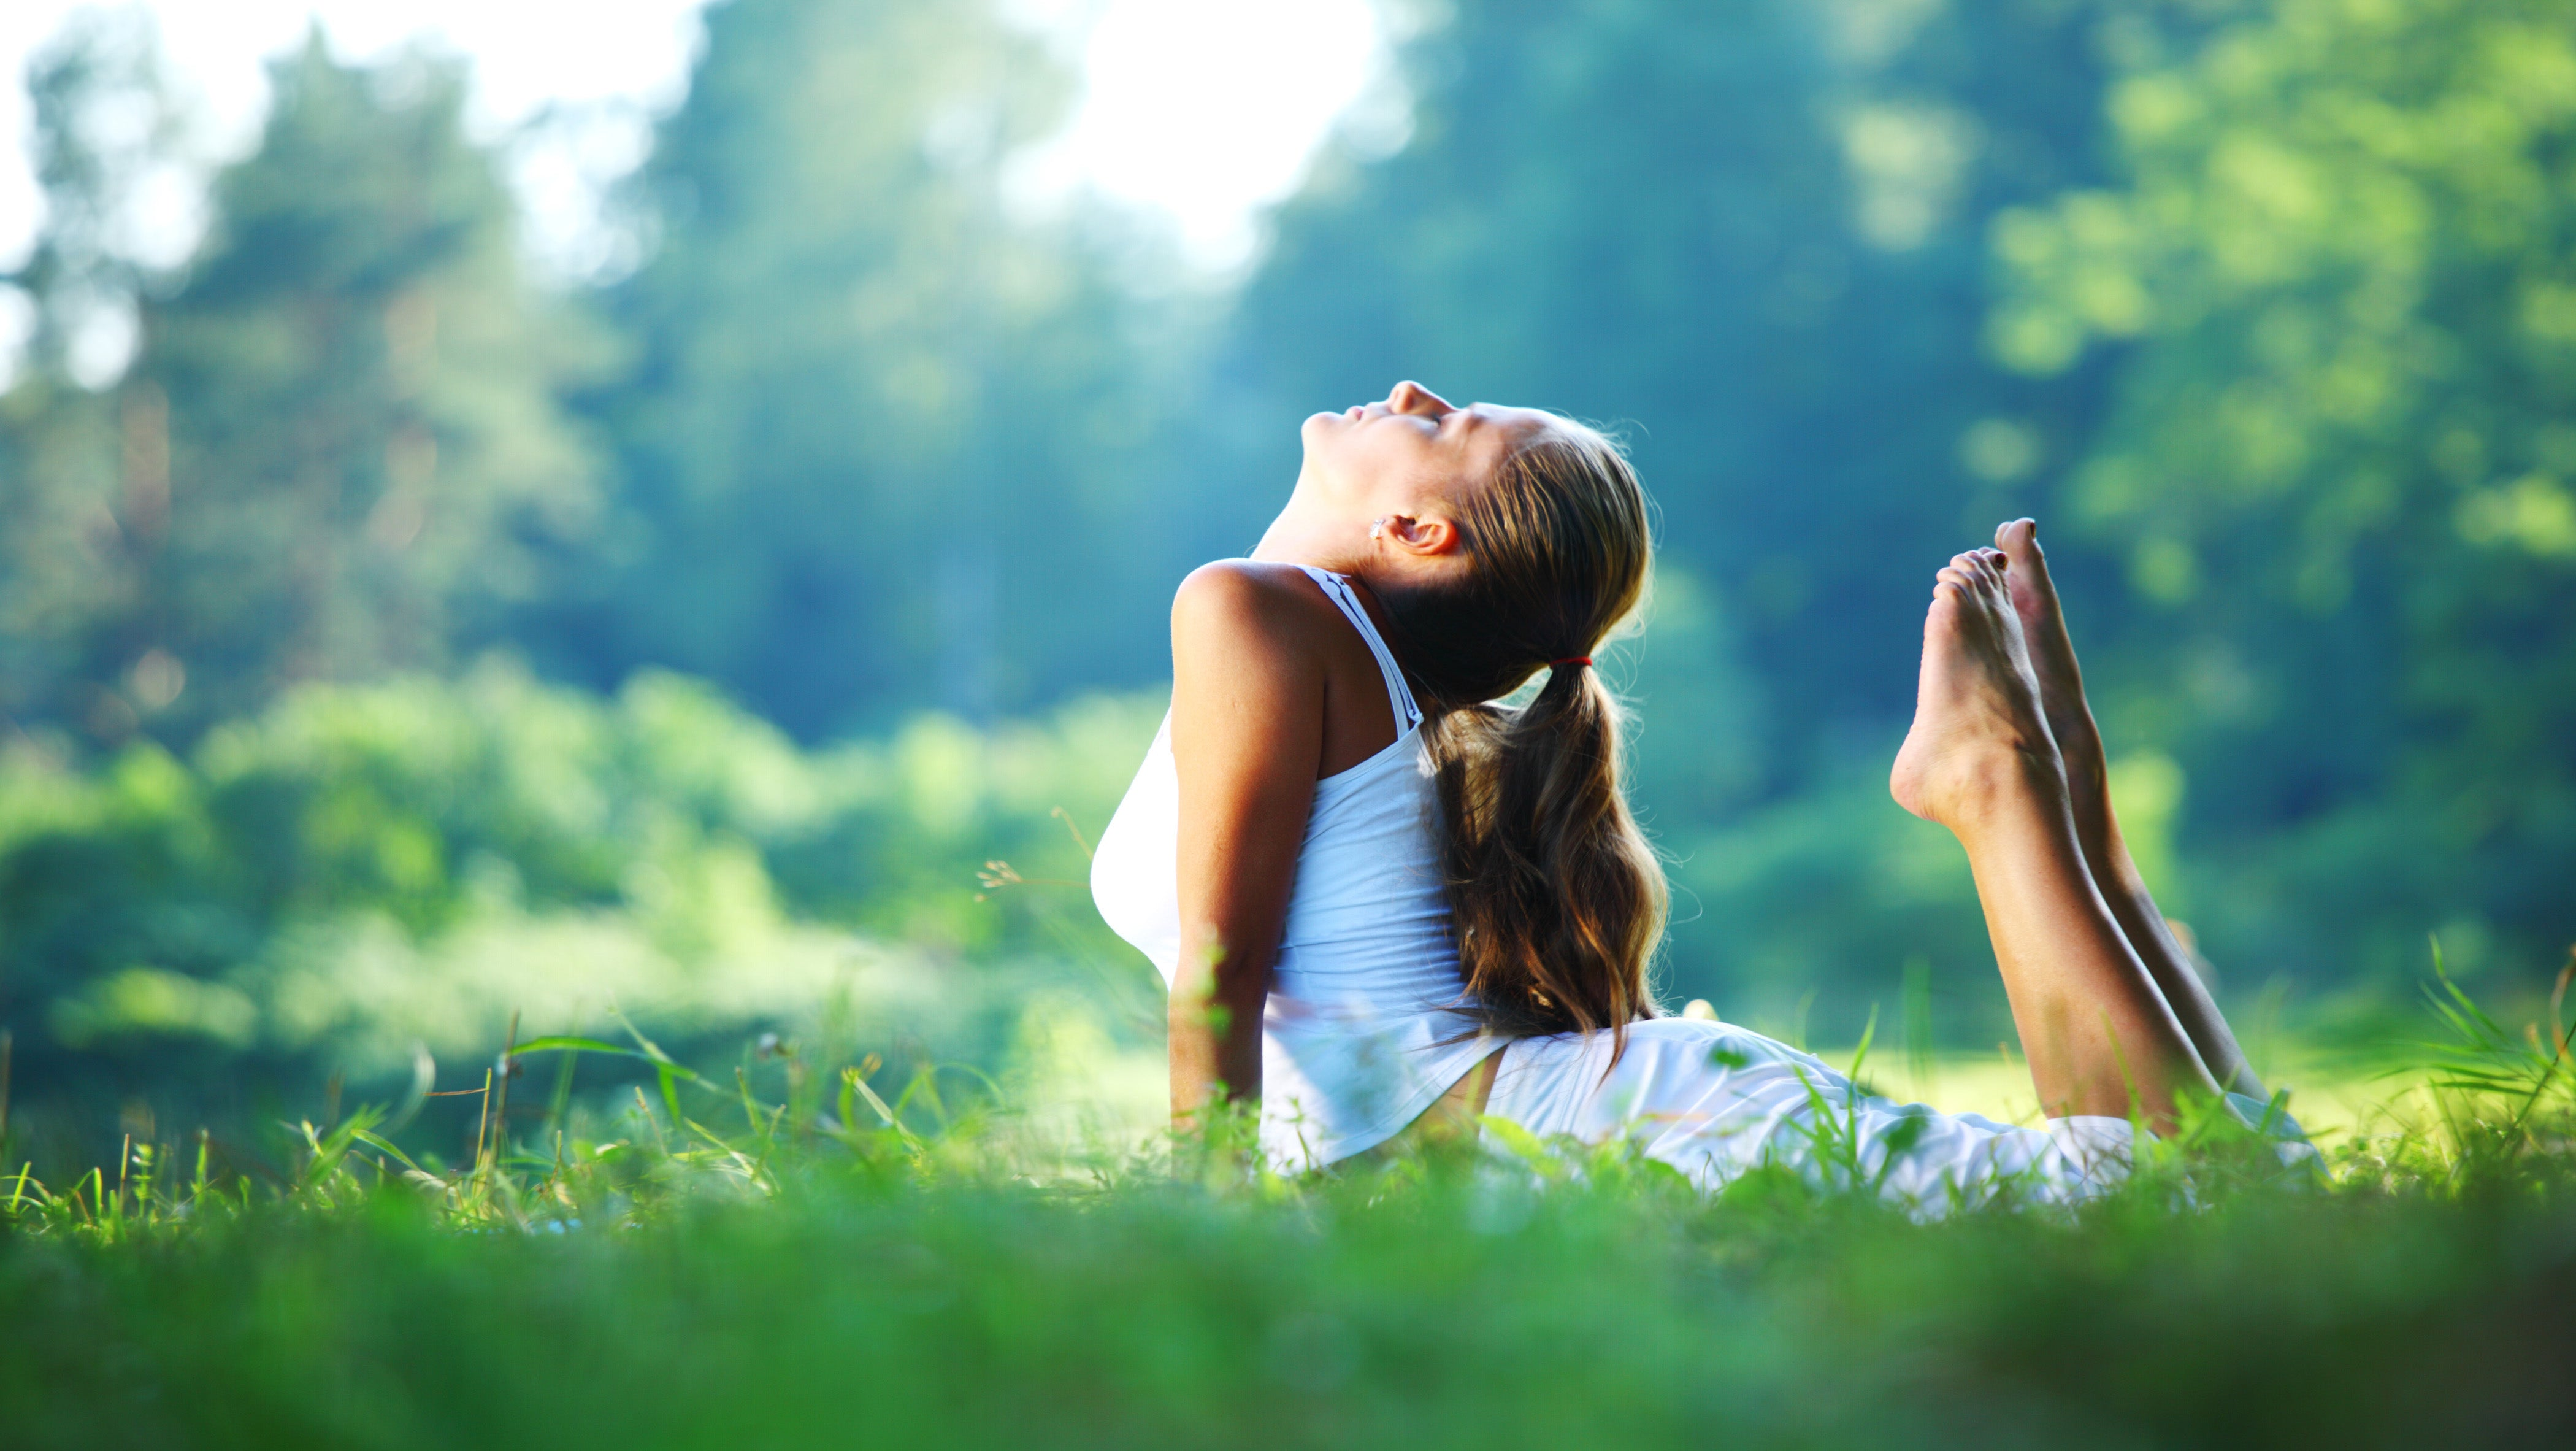 7 Tips to Enjoy a Healthy Spring